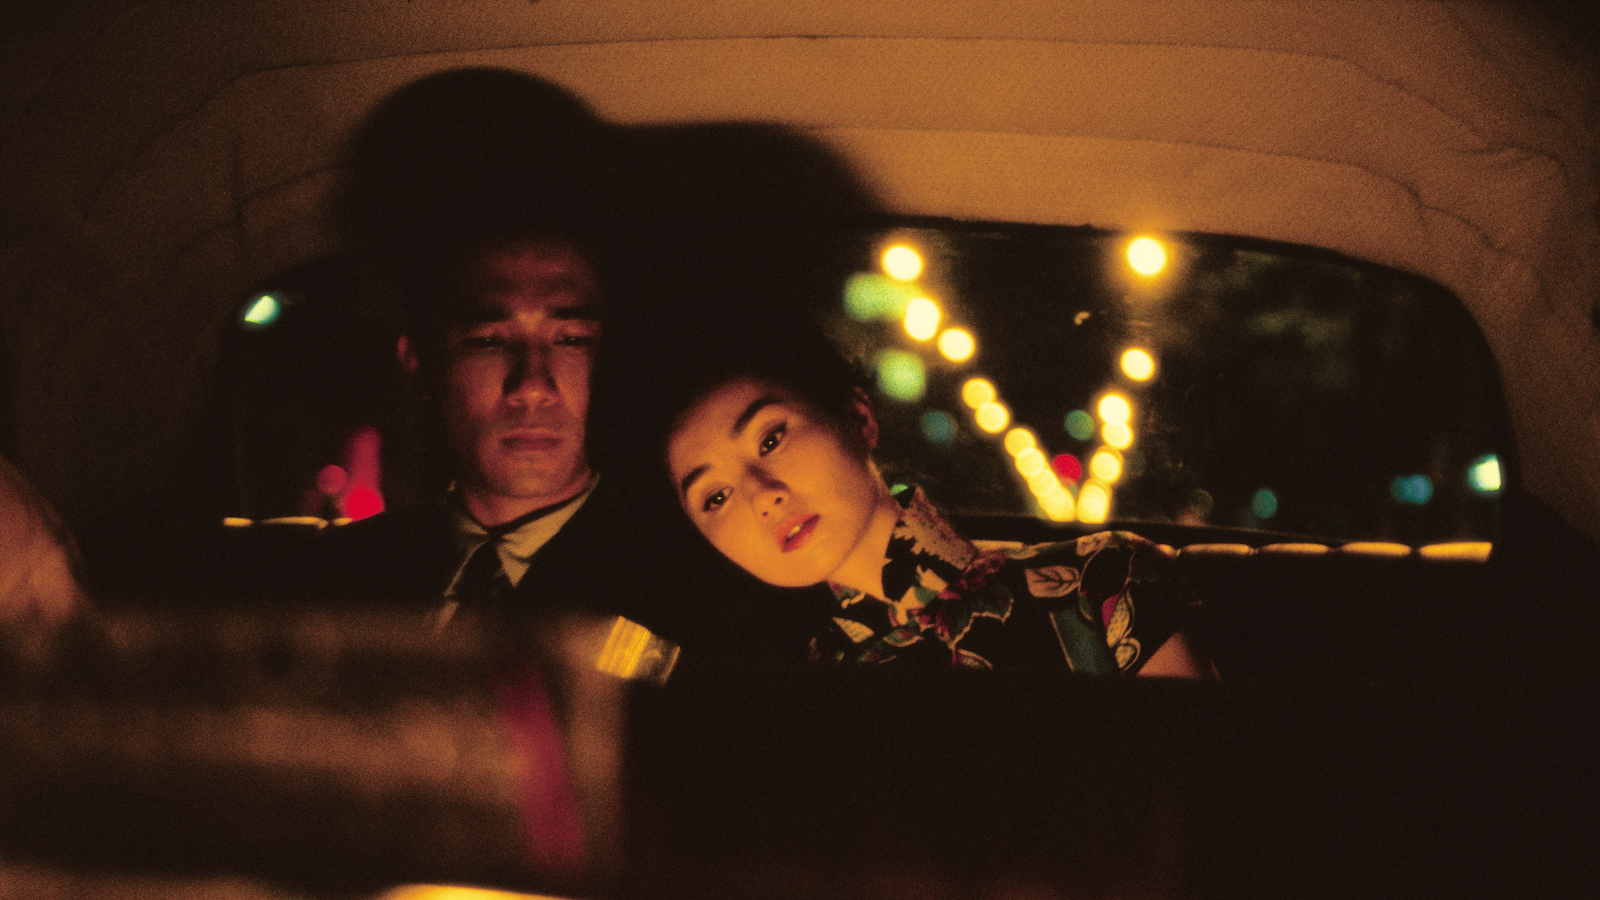 Seminar: In the Mood for Love